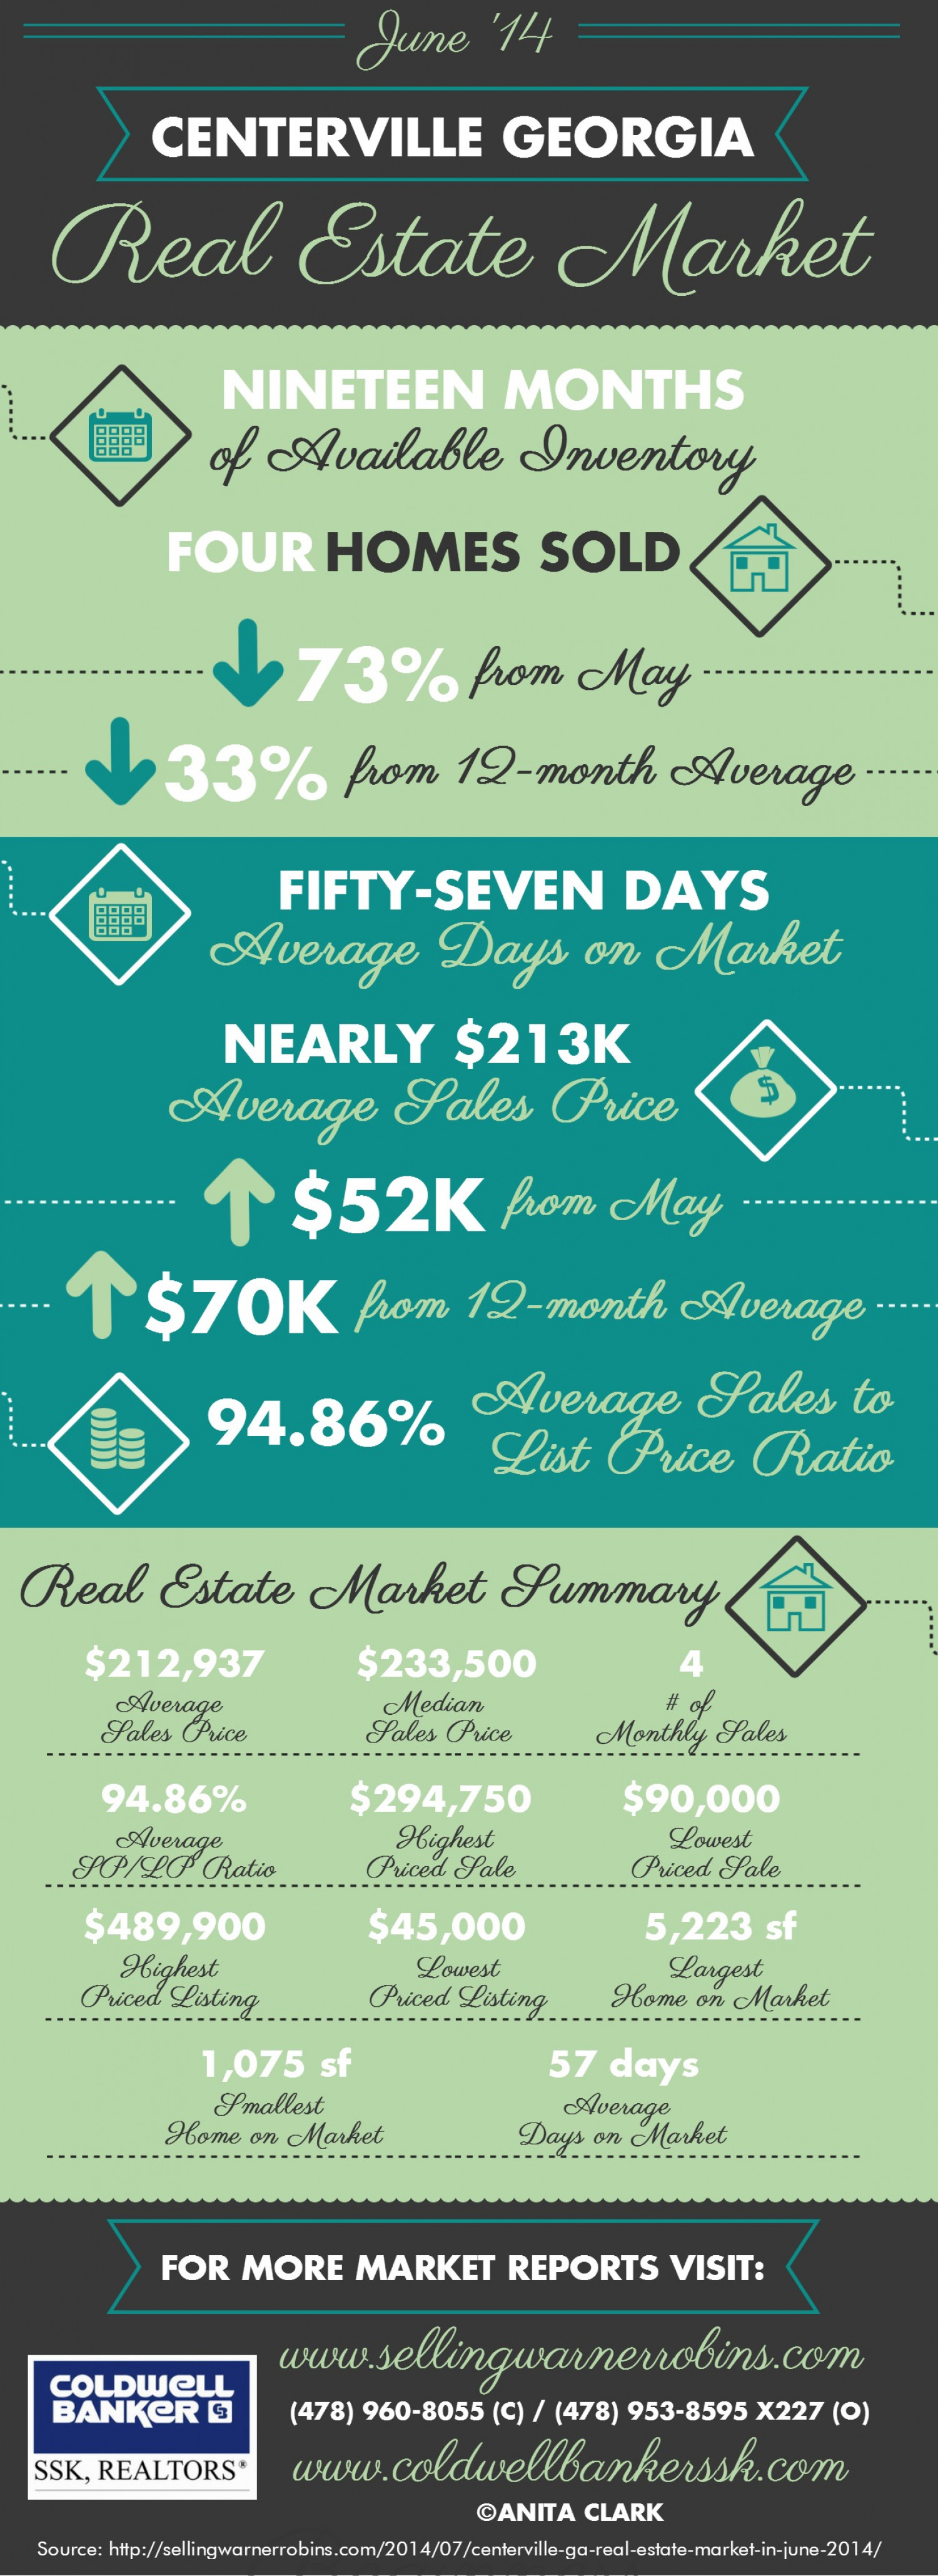 Centerville GA Real Estate Market in June 2014 Infographic